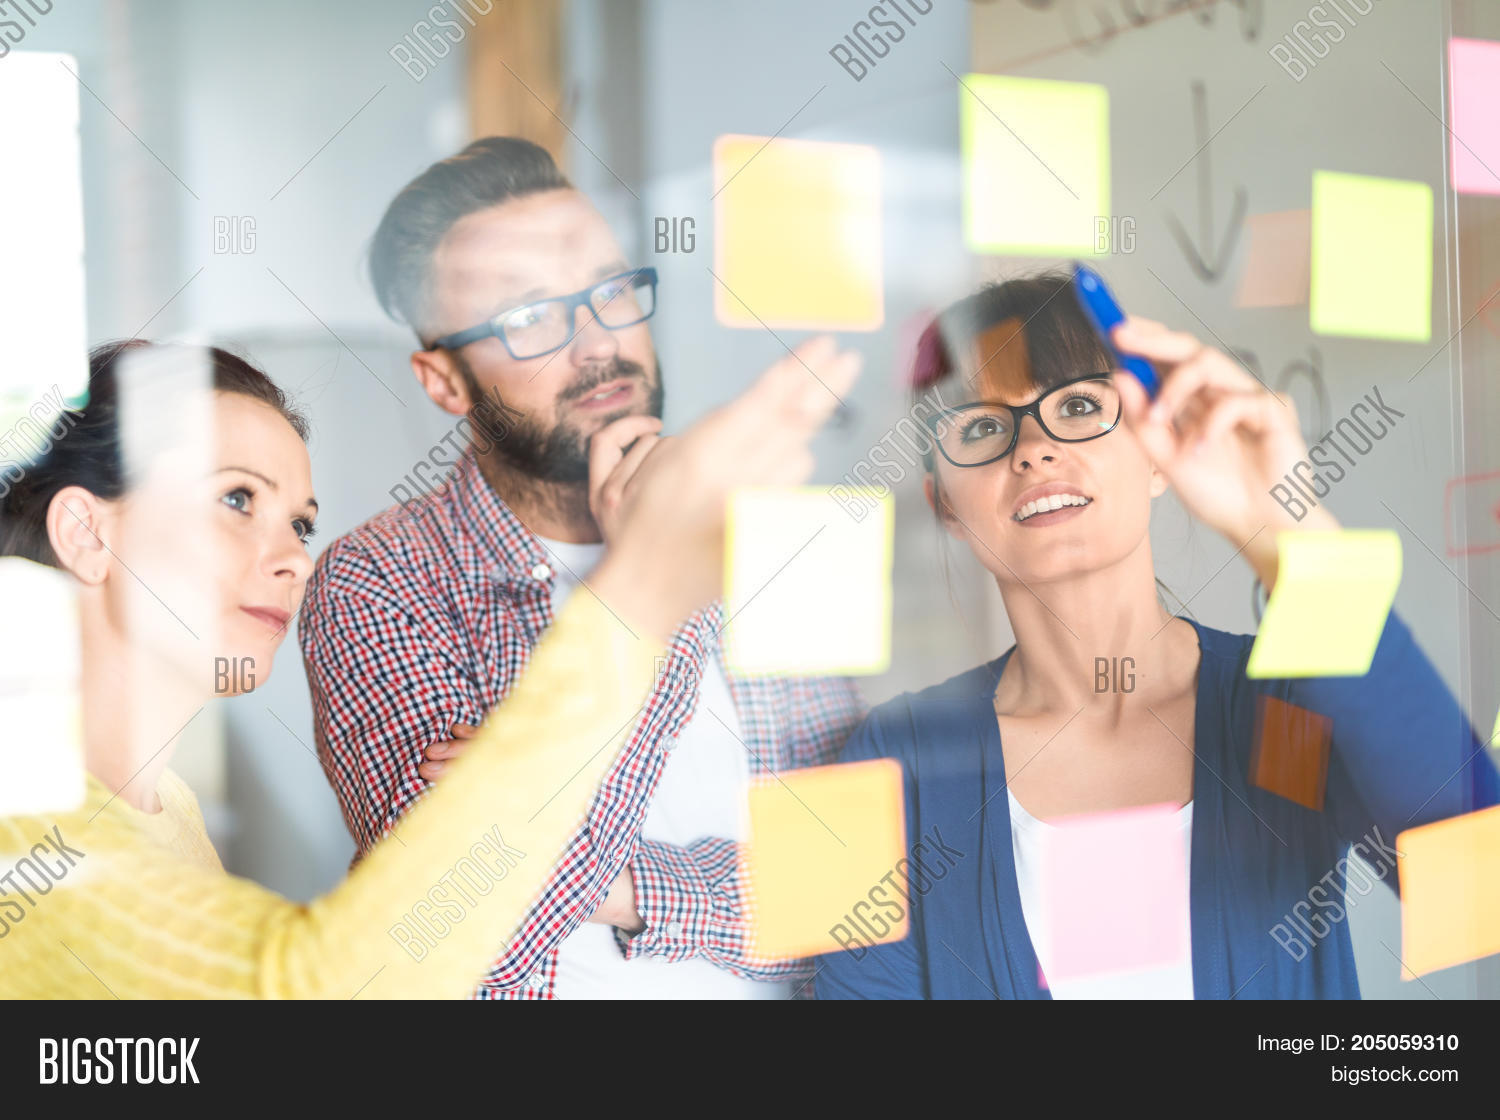 Business People Image & Photo (Free Trial) | Bigstock